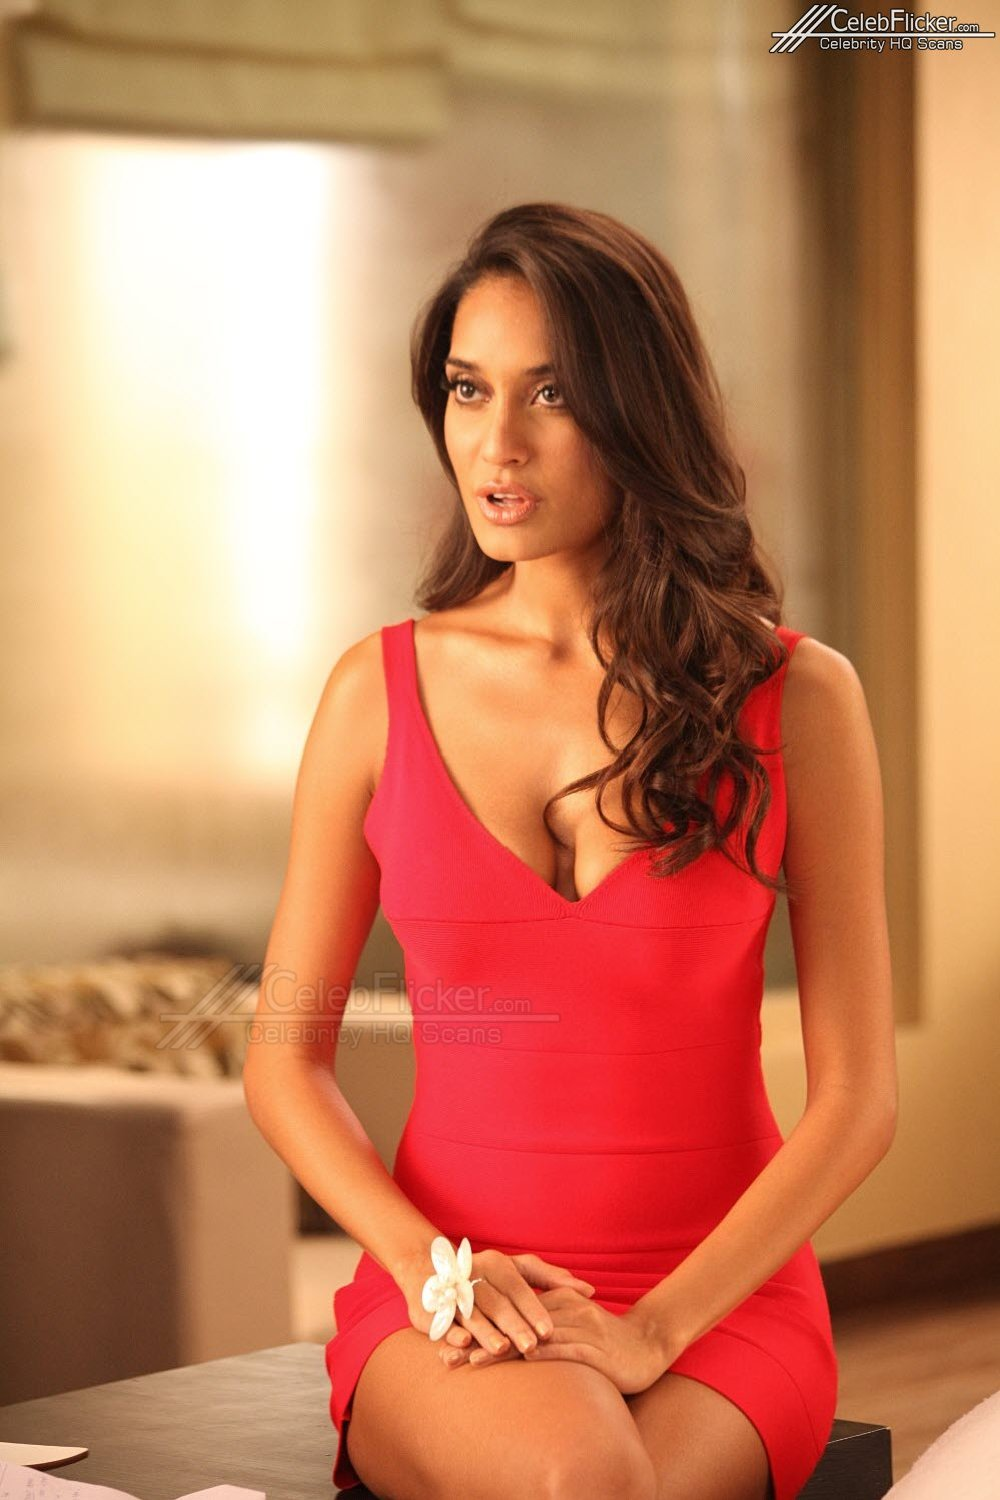 Hot actress pics: Lisa Haydon